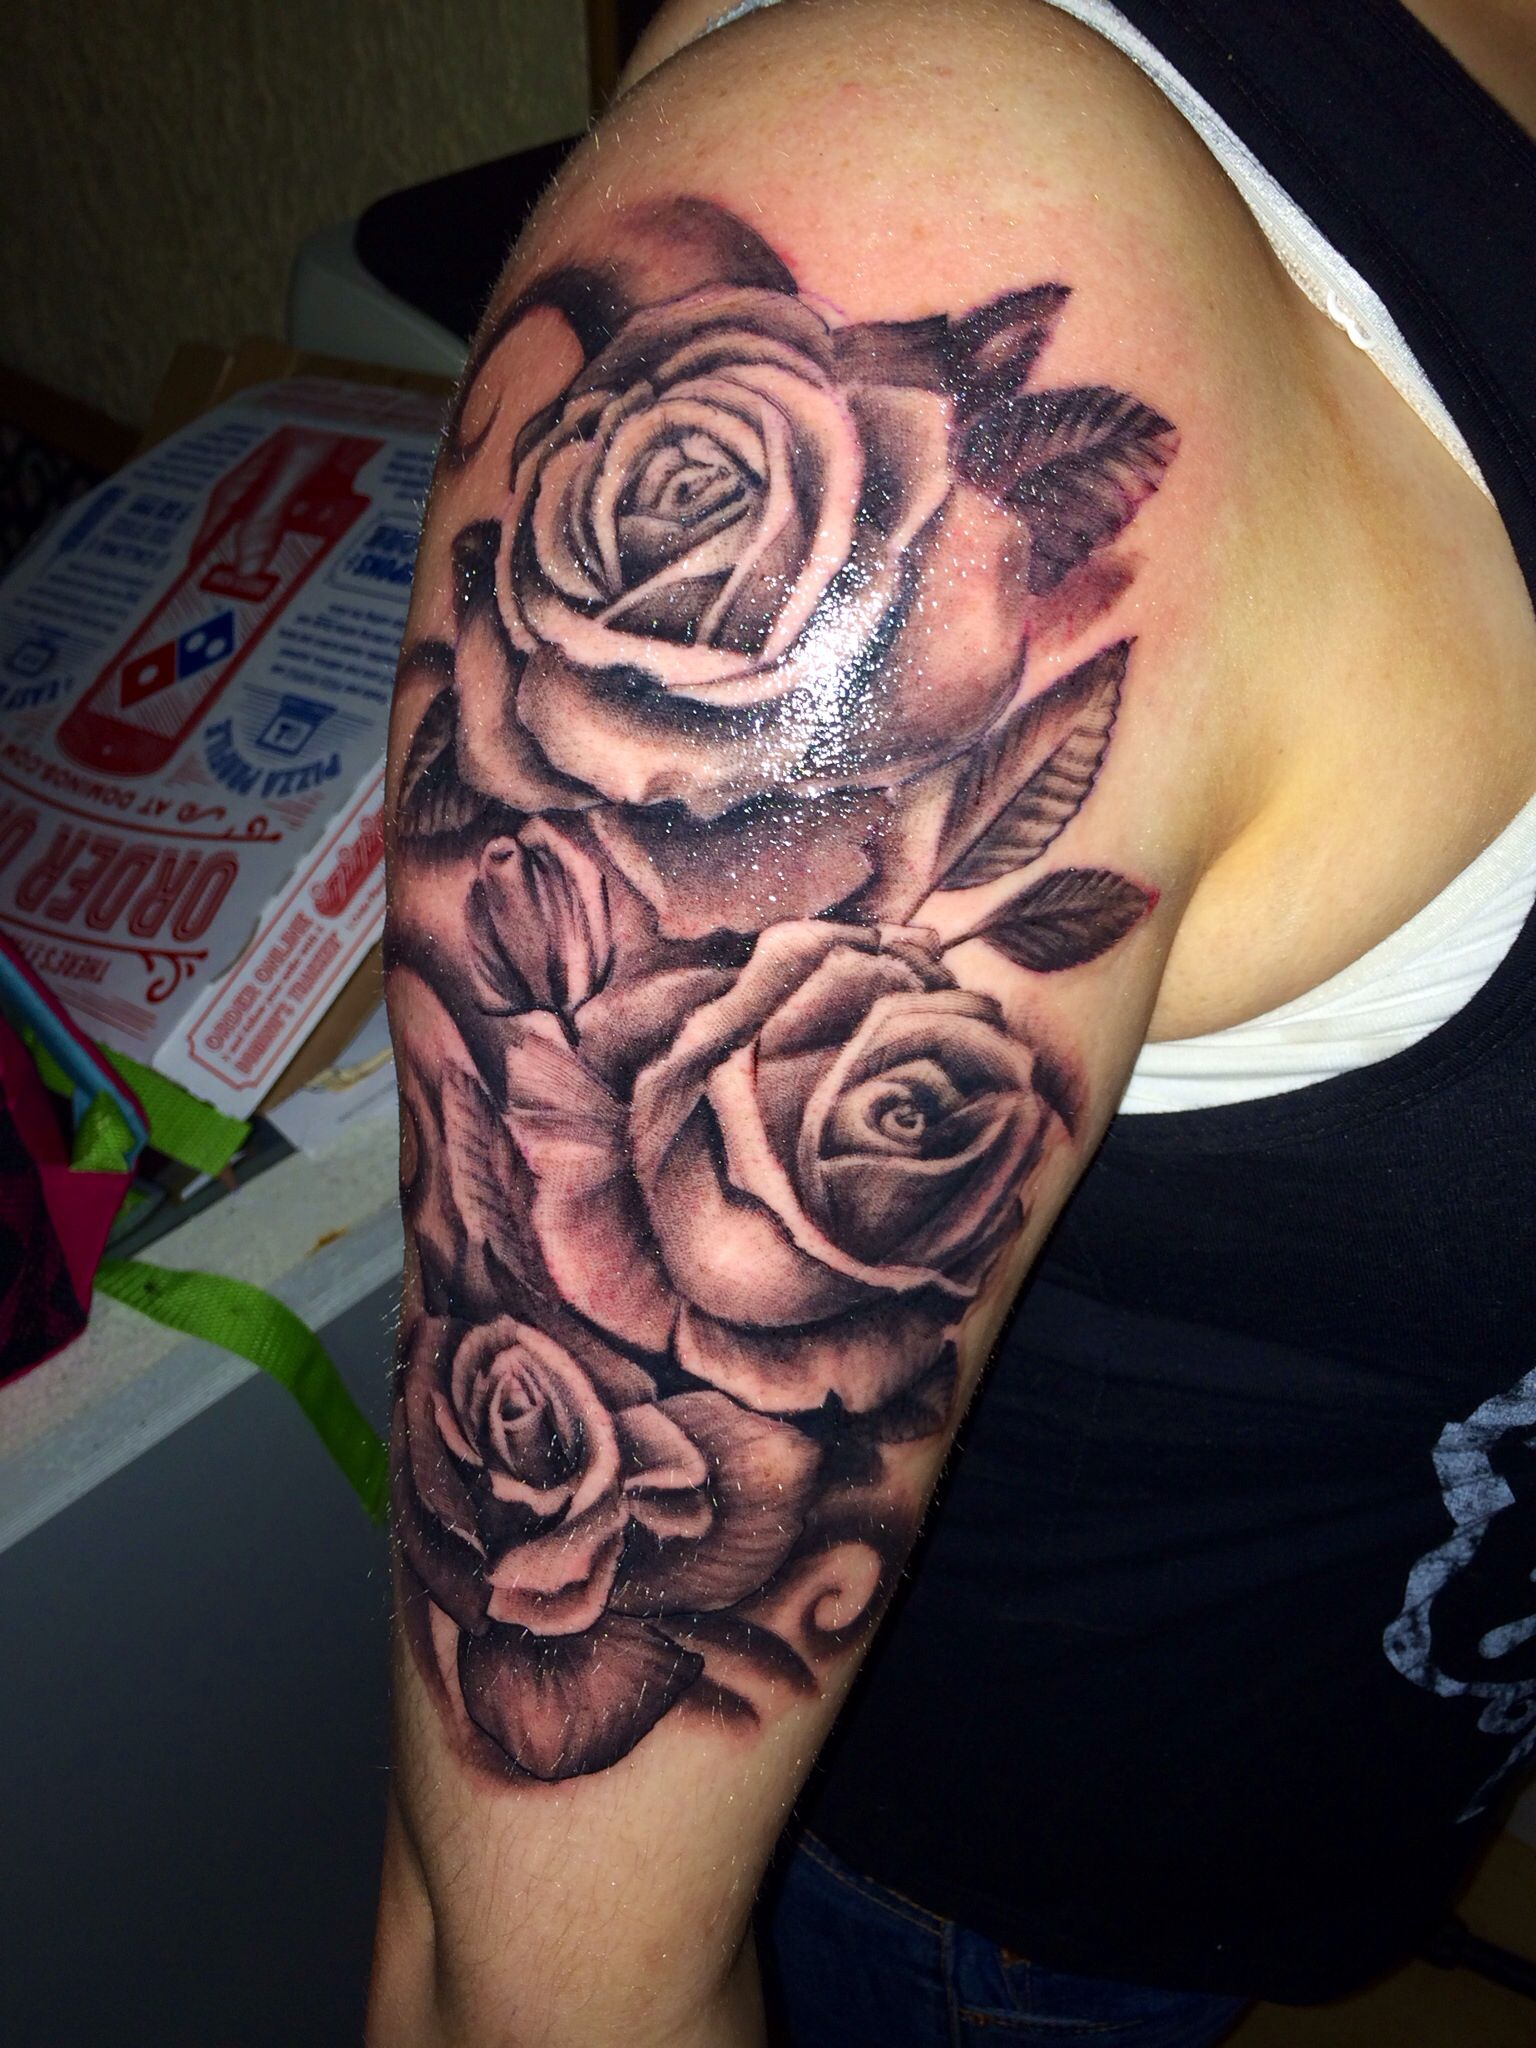 Just got this the last night. Percent idea for rose